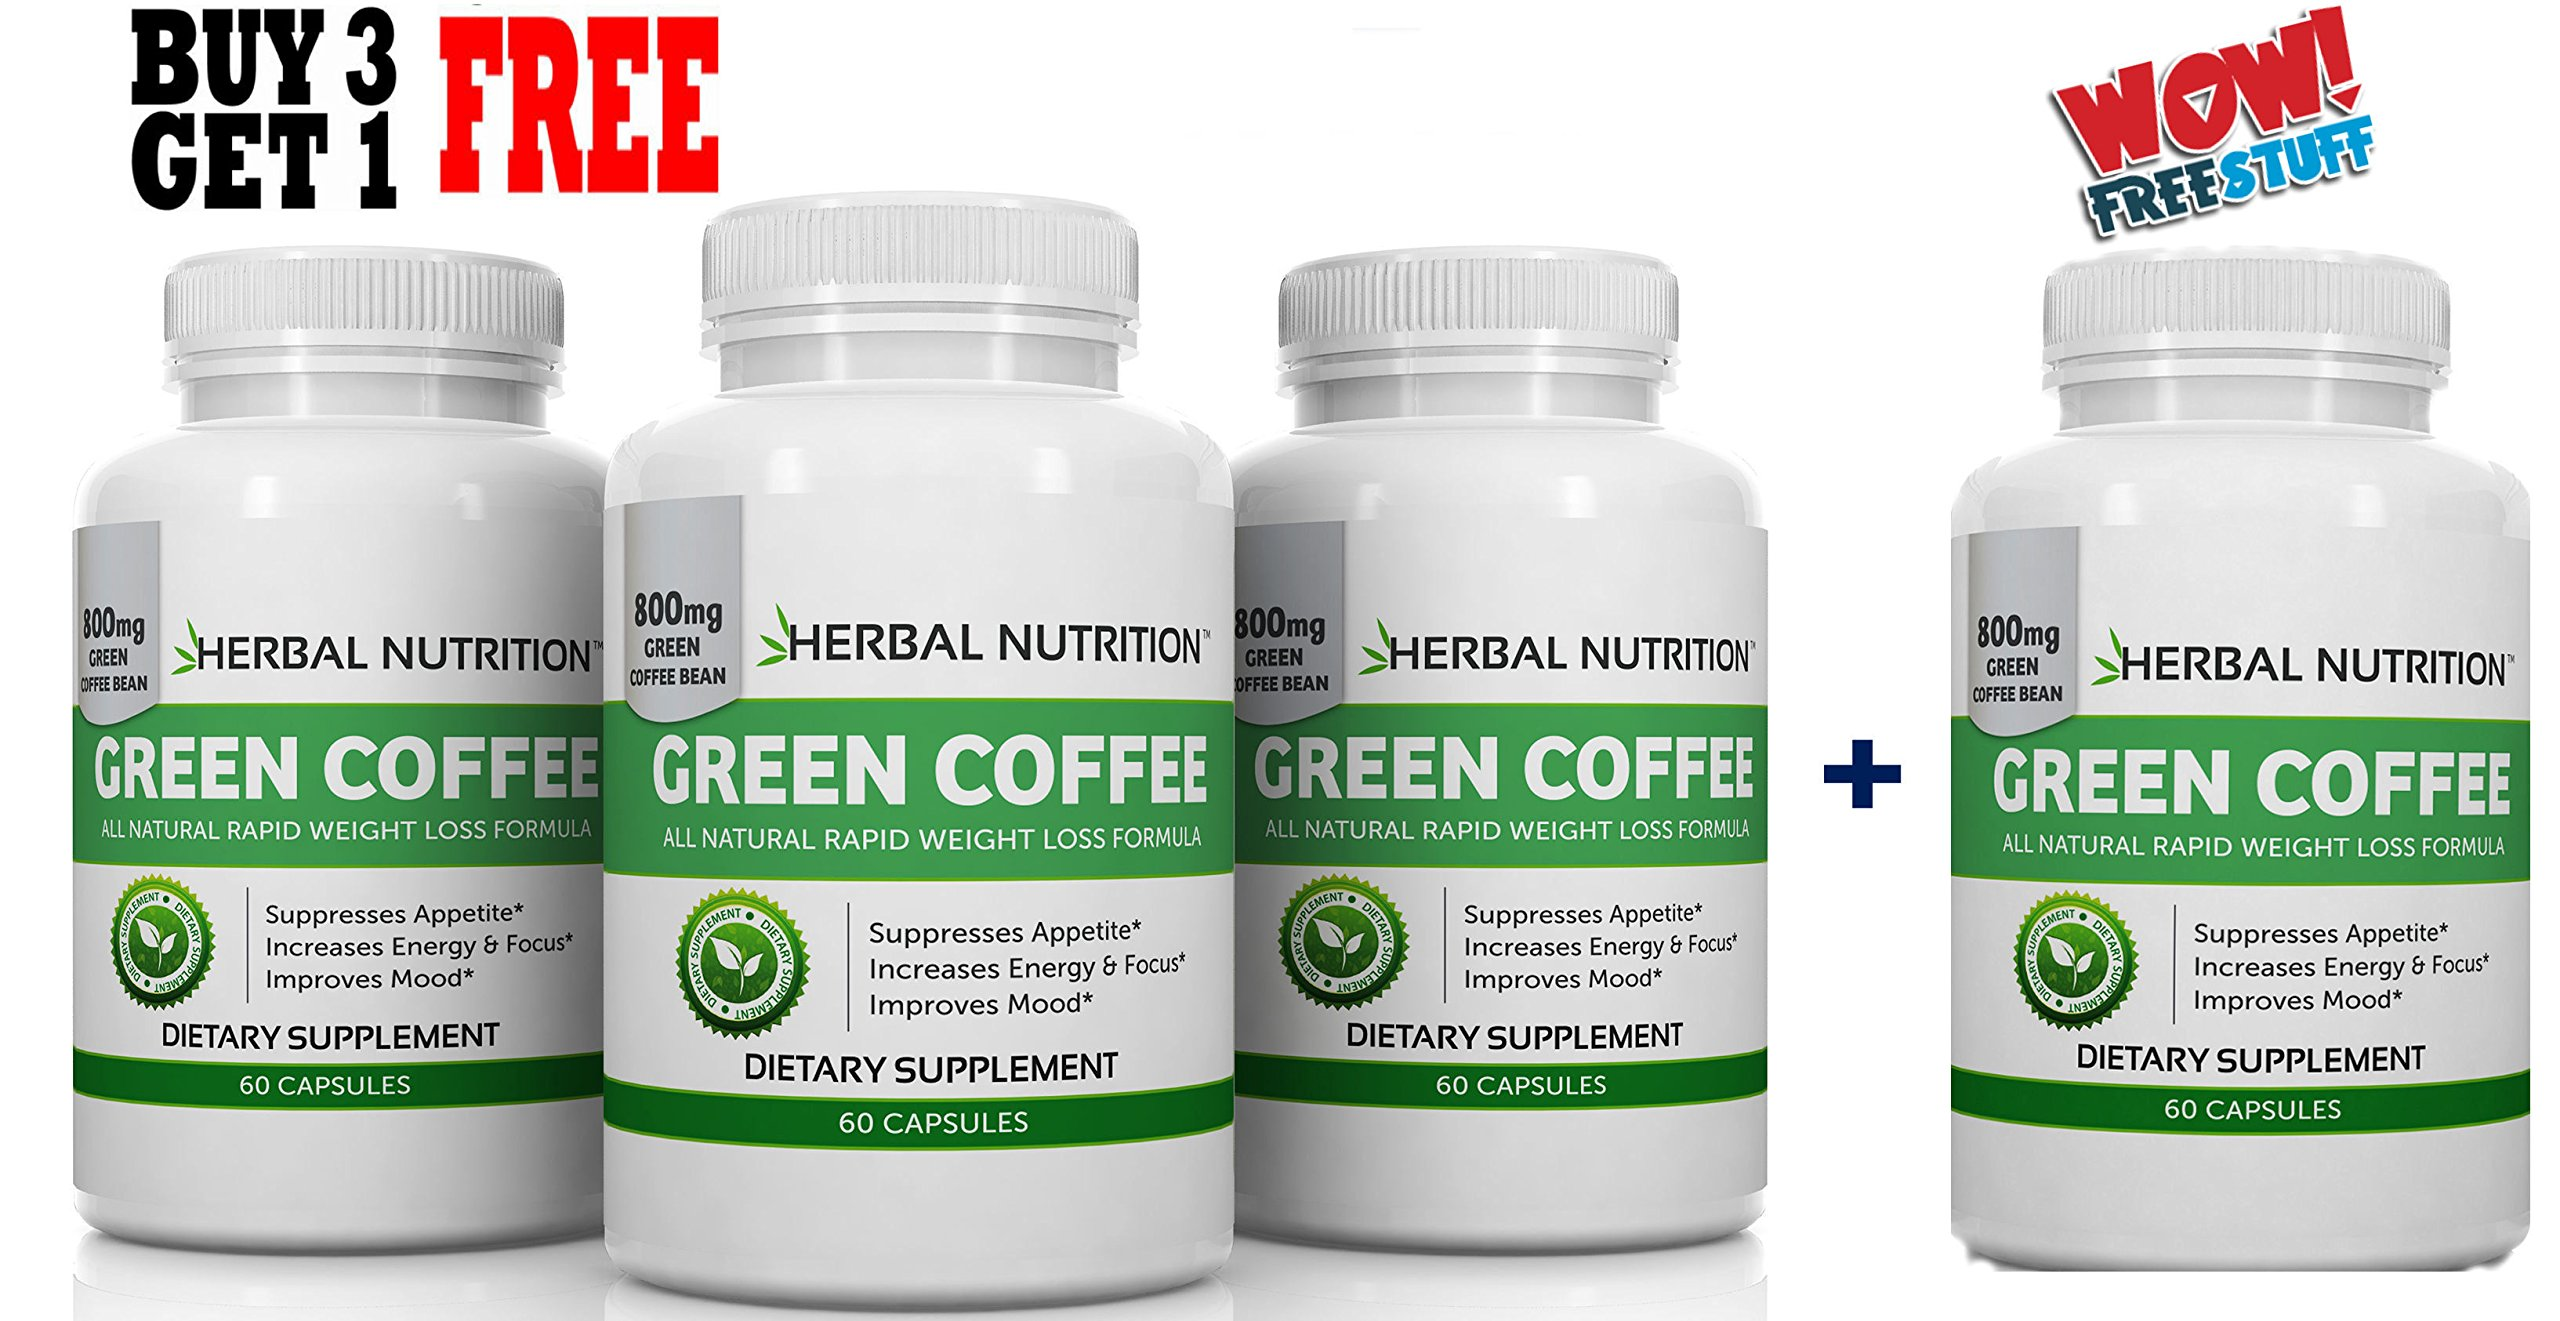 Green Coffee Extract for Weight Loss 240 Capsules 4 Month Supply 800mg at 50% Chlorogenic Acid Weight Loss Supplement Free Shipping